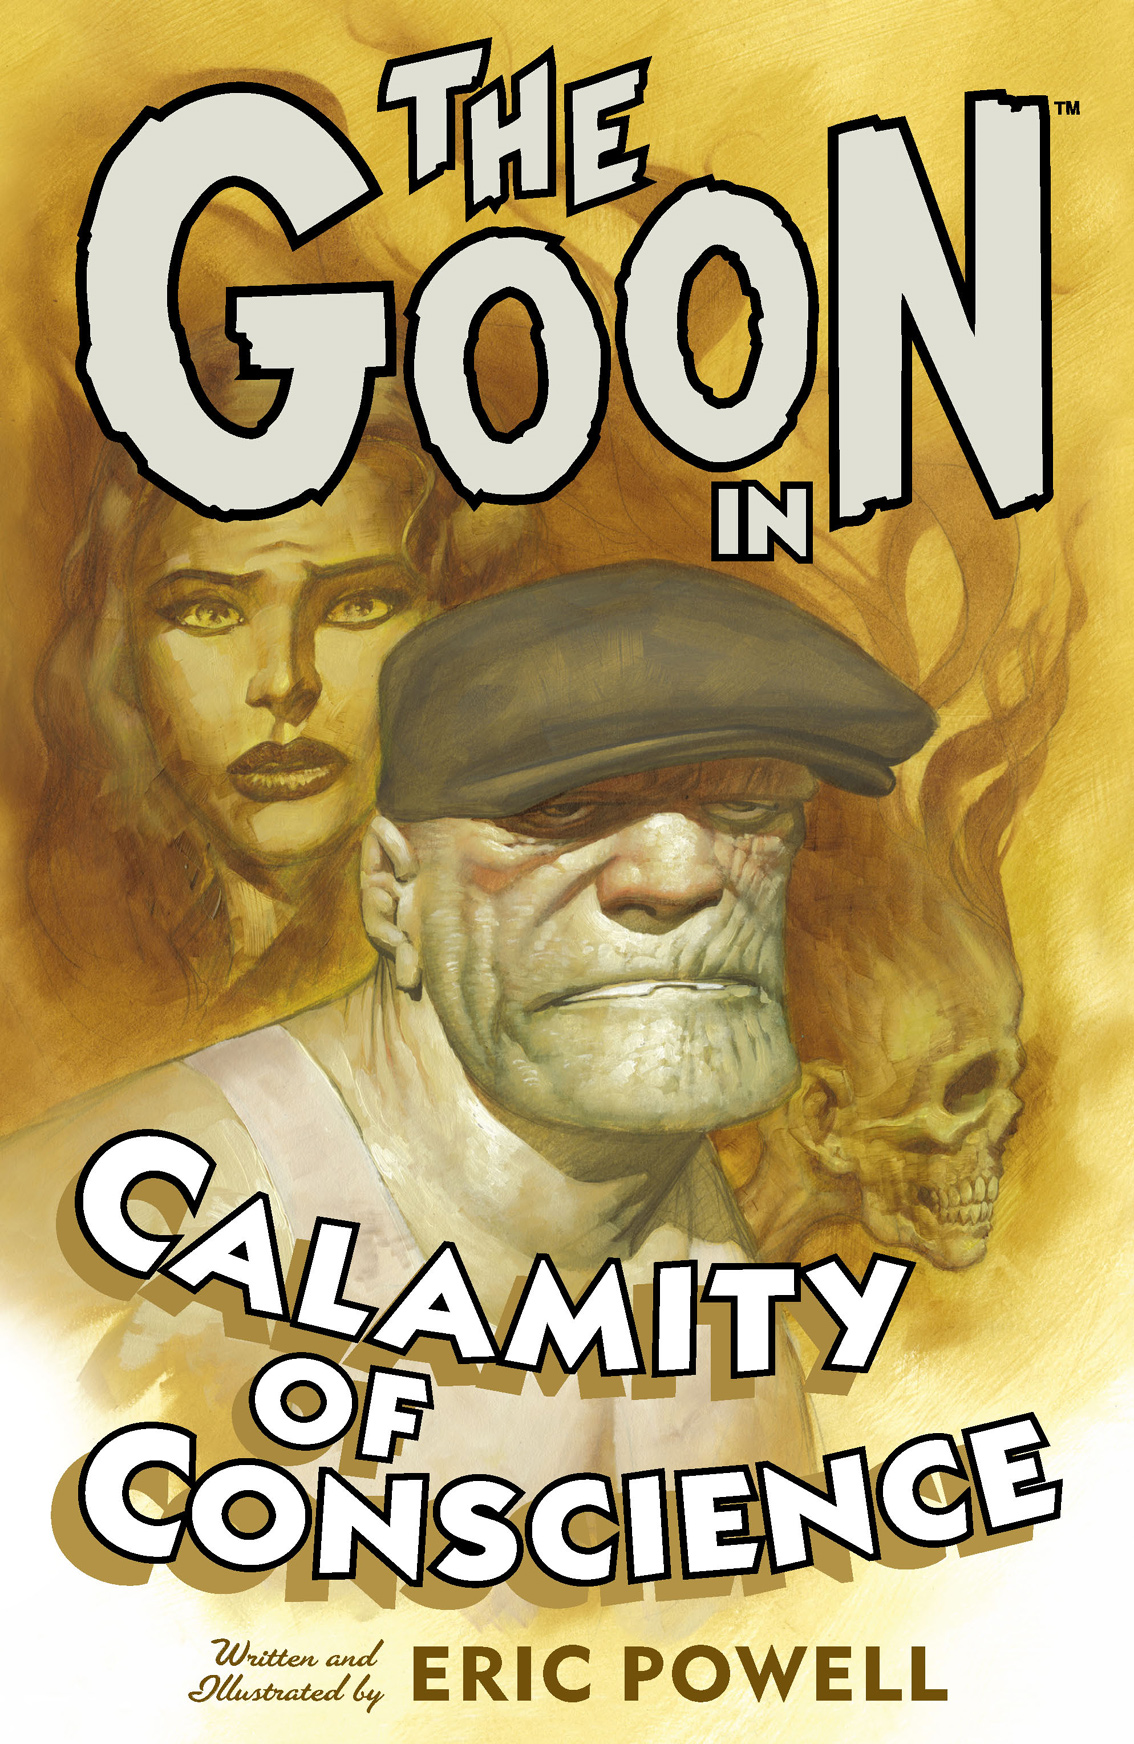 The Goon Volume 9: Calamity of Conscience By: Eric Powell